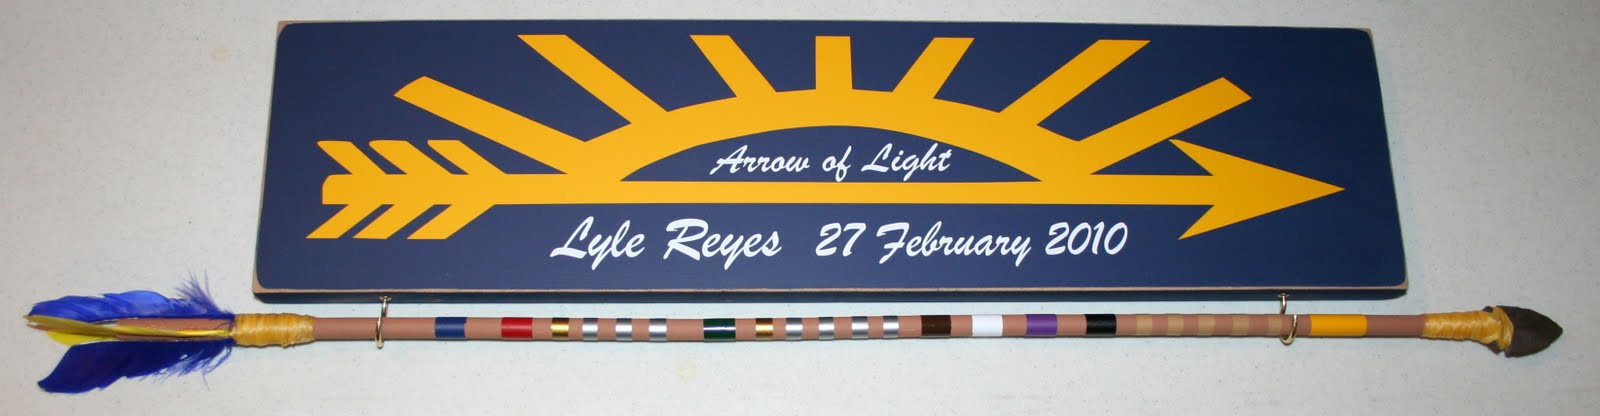 Arrow Of Light Awards http://vinylbyrequest.blogspot.com/2010/09/arrow-of-light-award-vinyl-kit.html